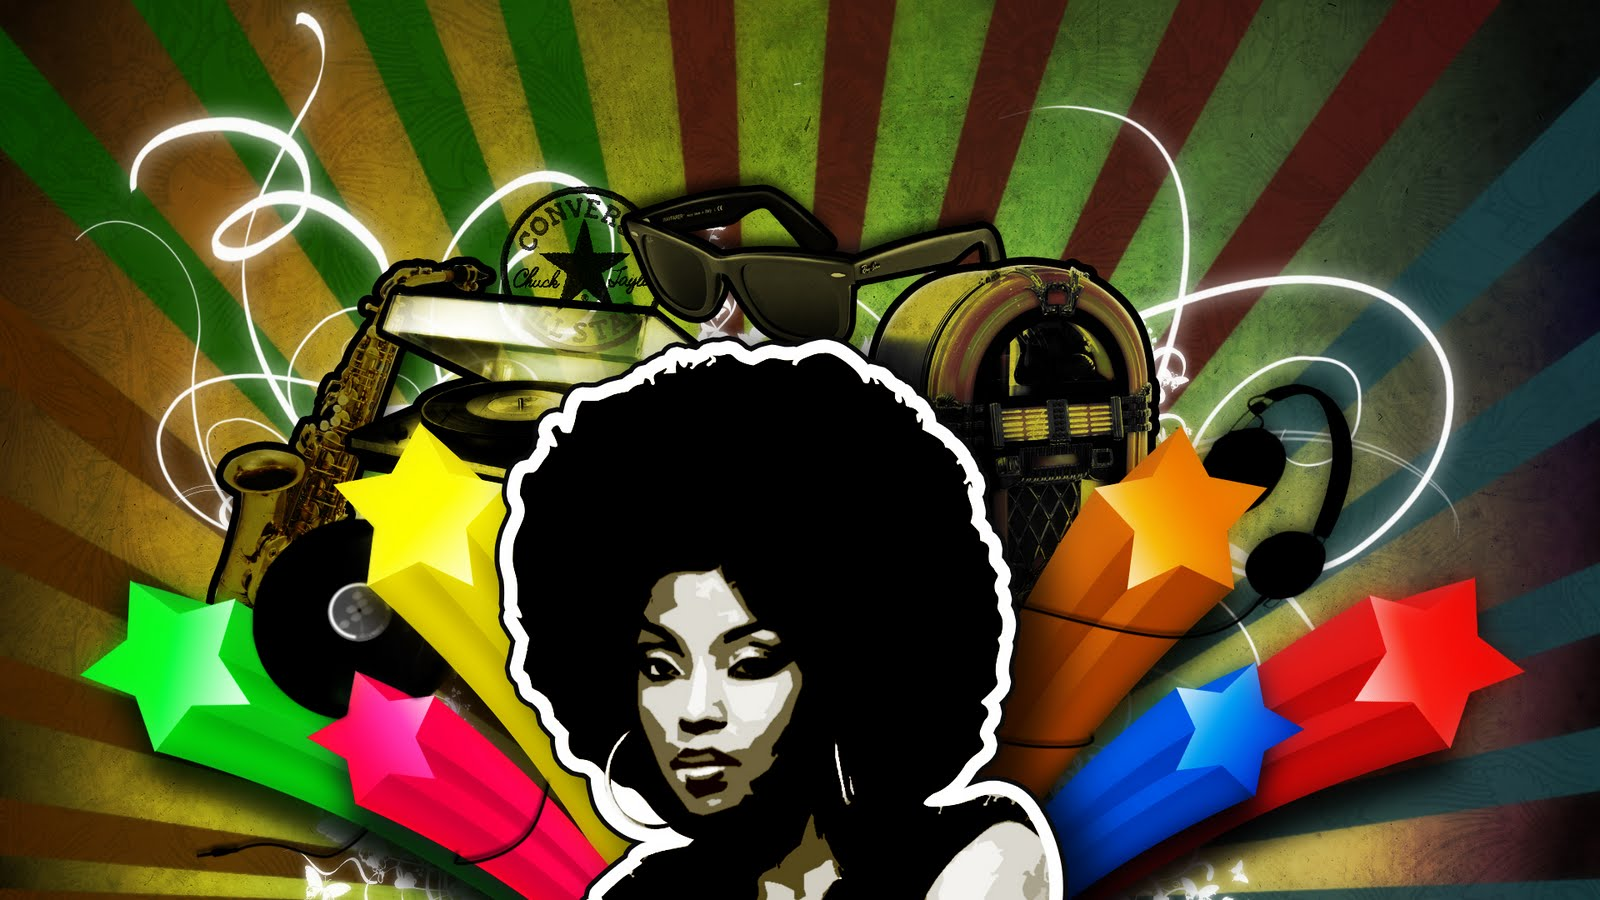 funk music 8tracks radio online, everywhere - stream 10,000+ funk playlists including soul, jazz, and rock music from your desktop or mobile device.